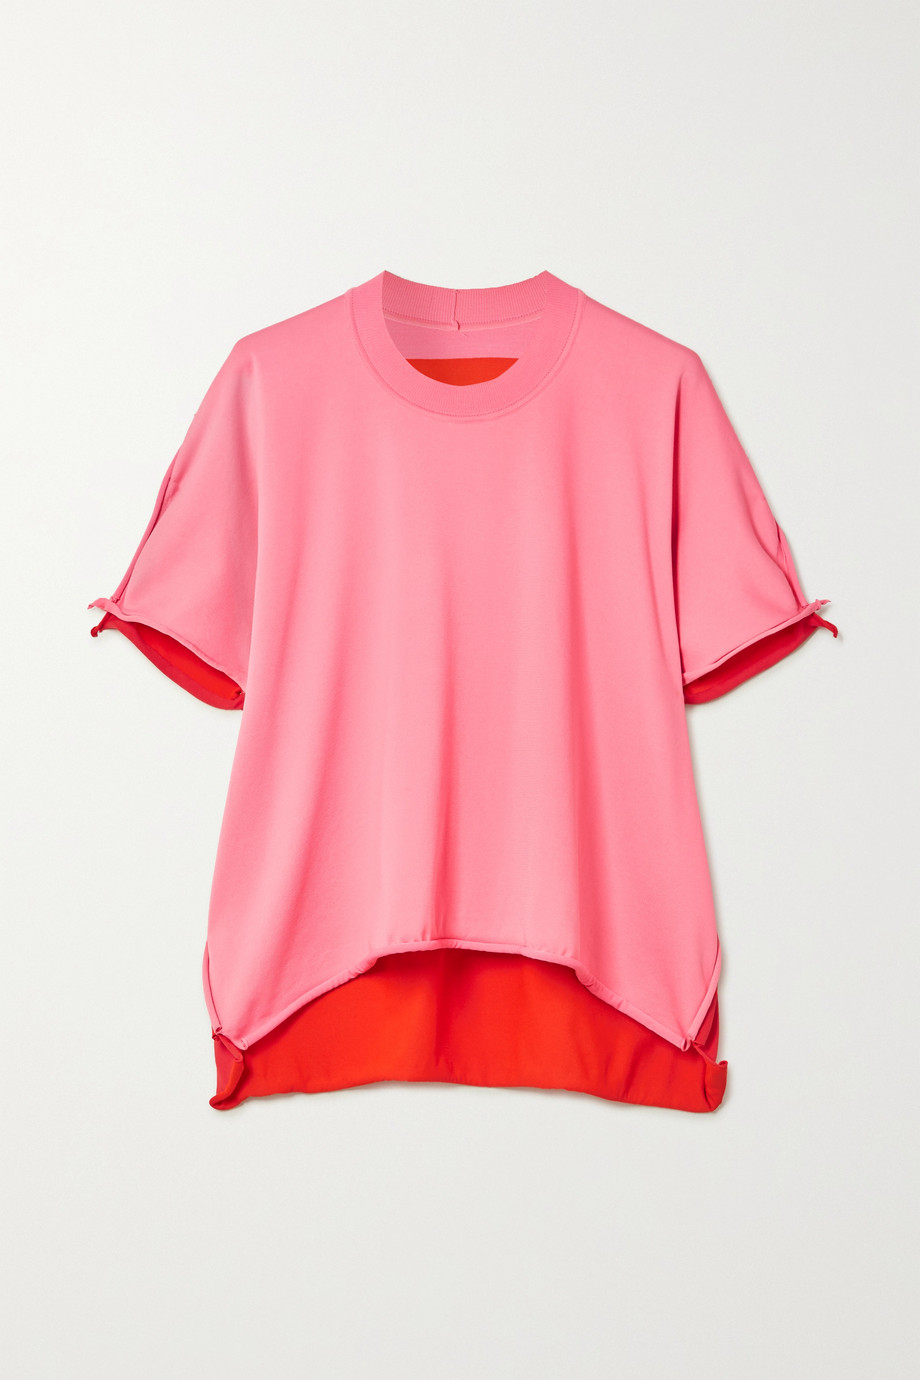 Bottega Veneta Two-tone jersey T-shirt